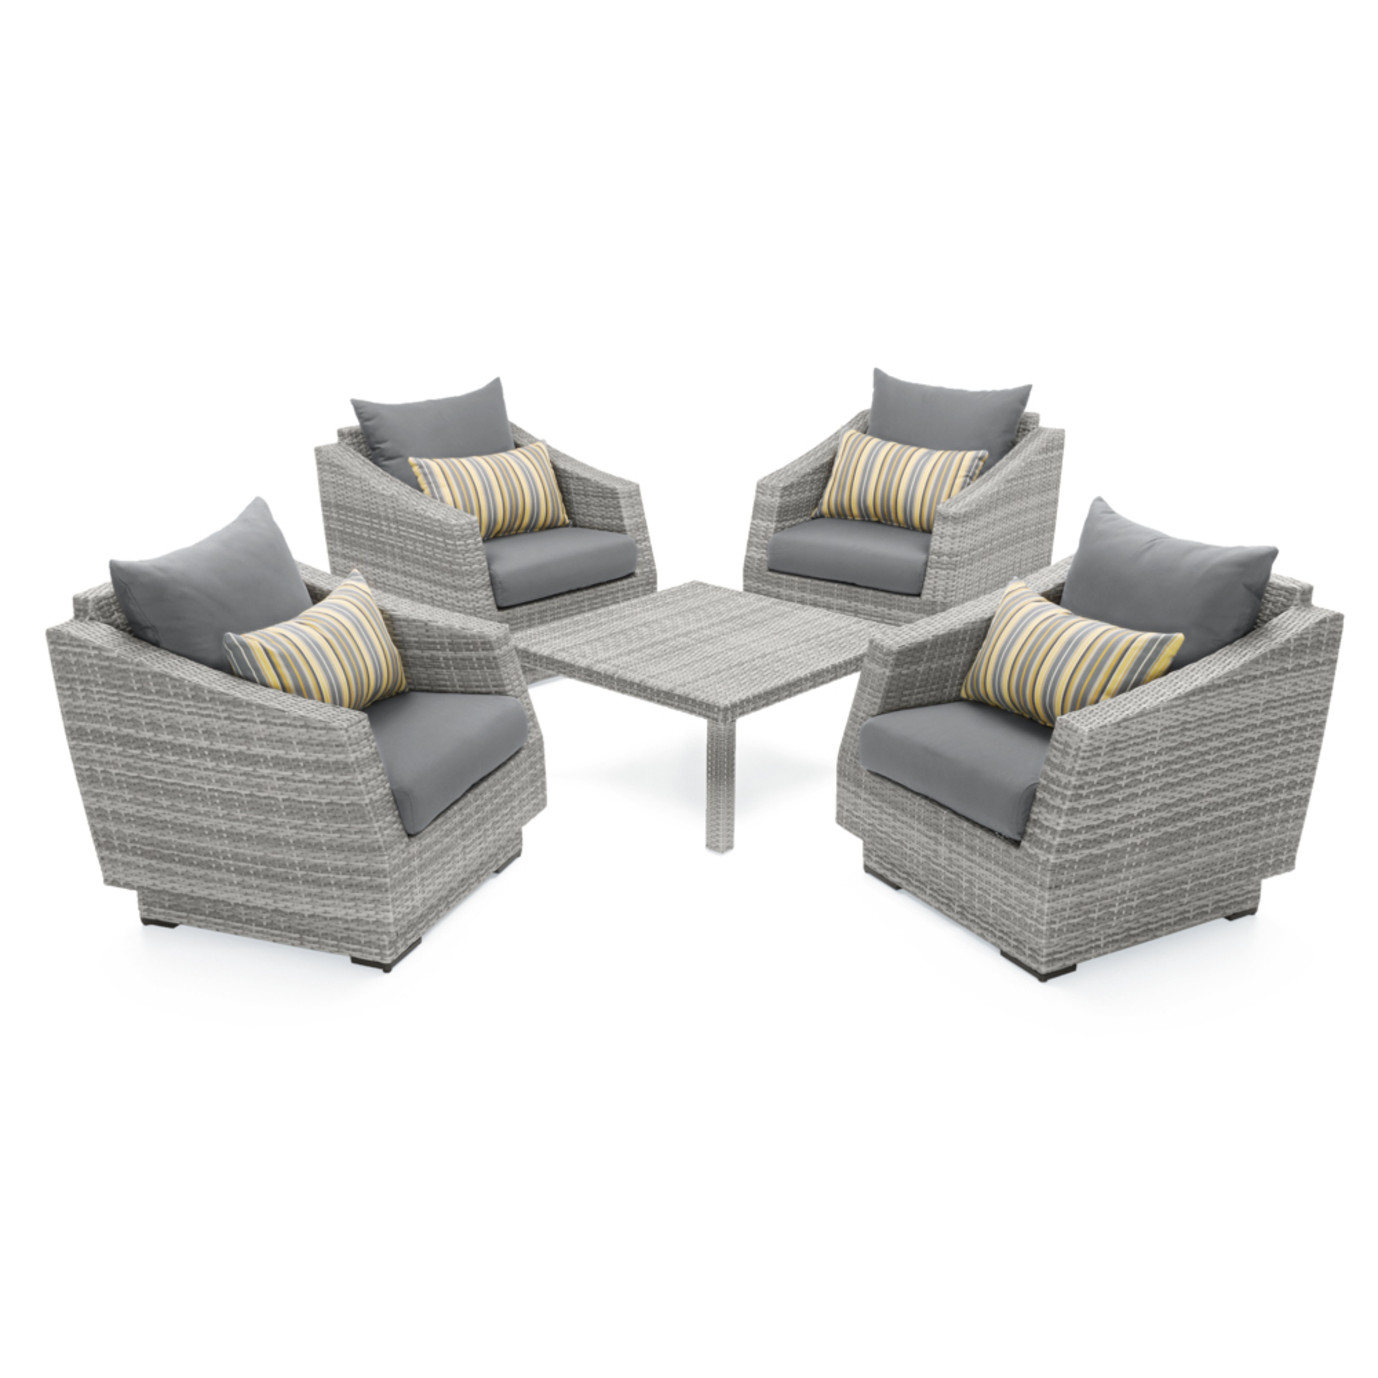 Cannes™ 5pc Club & Table Chat Set - Charcoal Gray